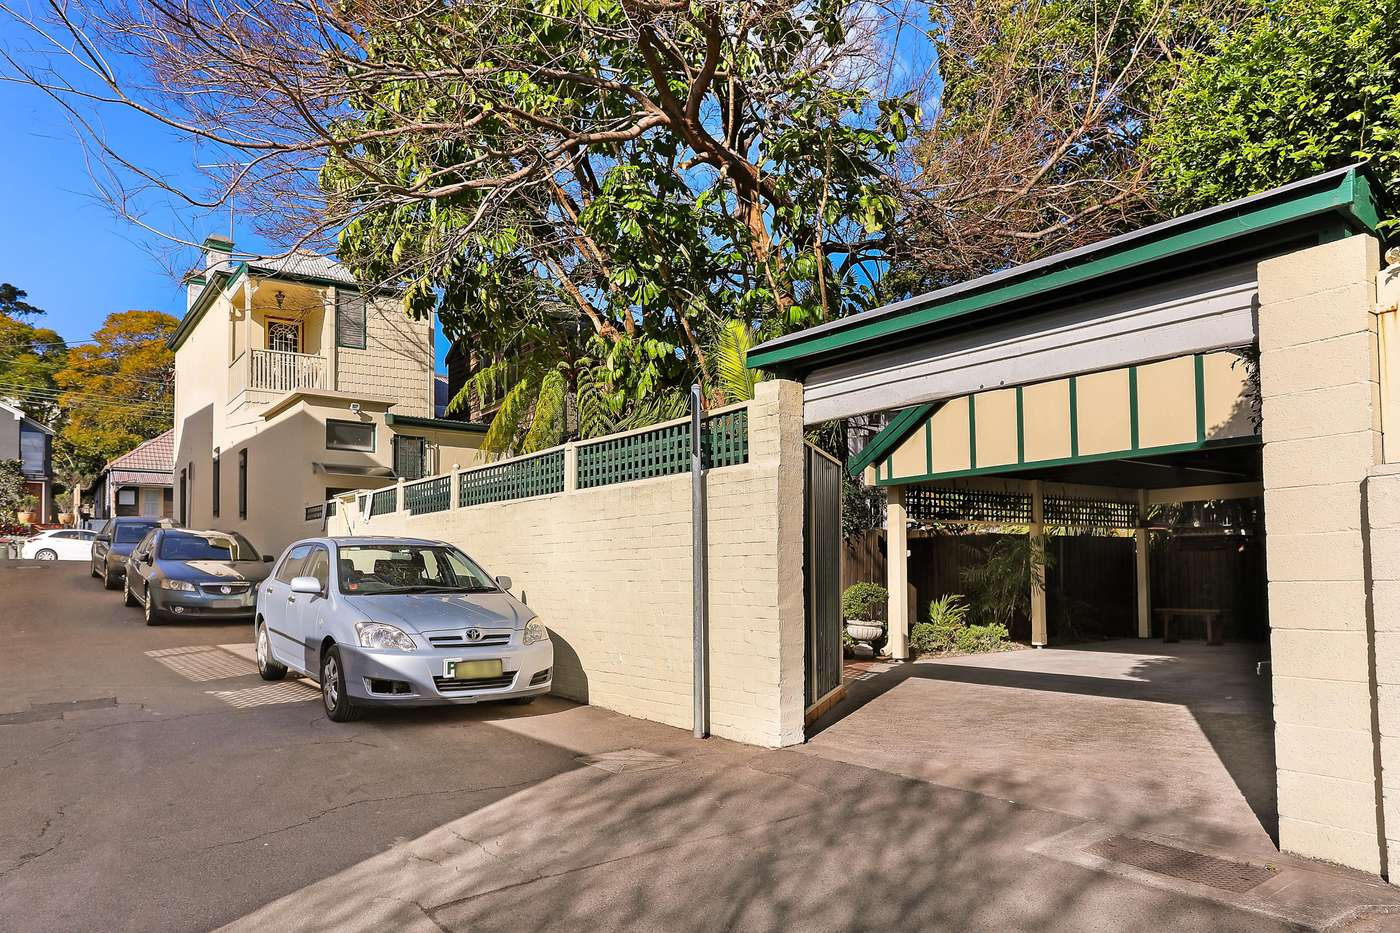 Main view of Homely house listing, 145 Mullens Street, Rozelle, NSW 2039